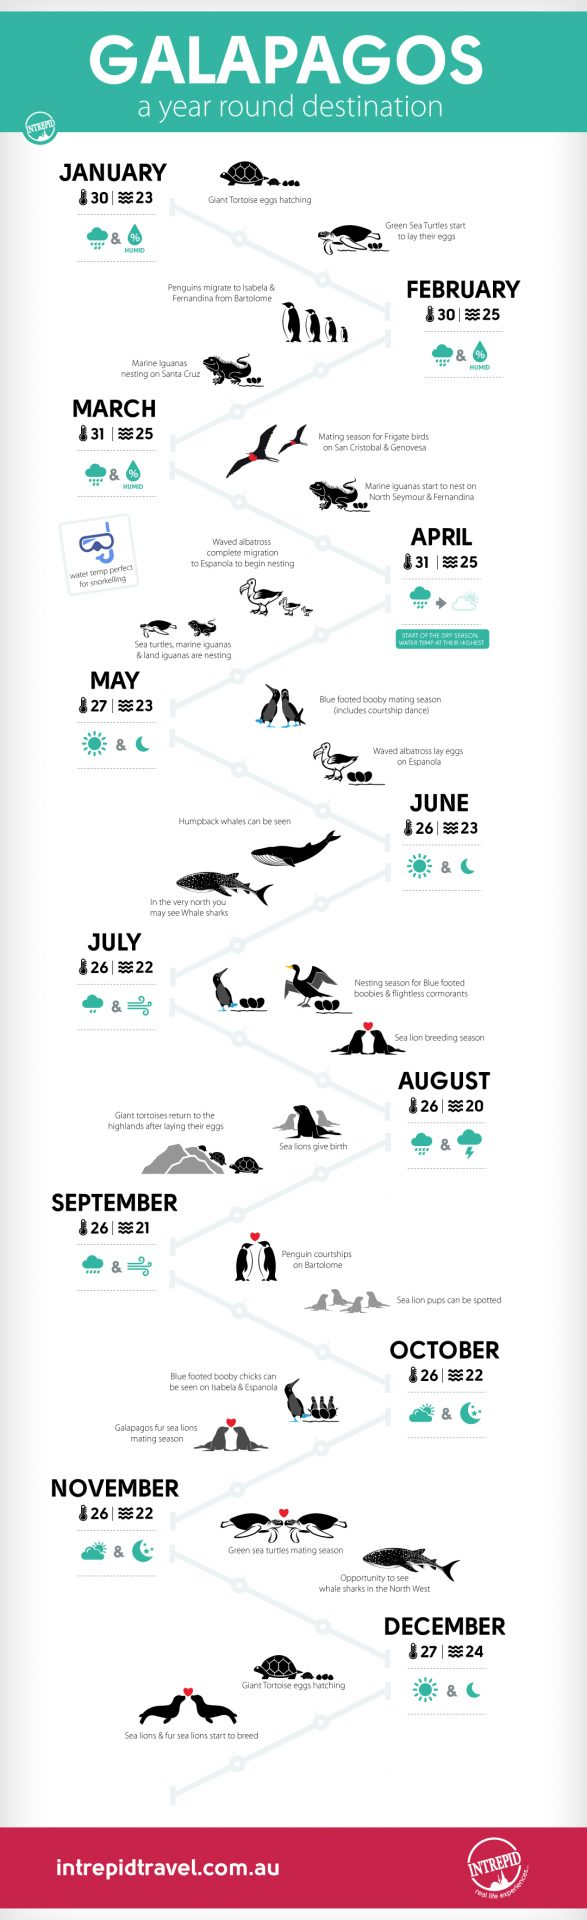 Best times to visit the Galapagos Islands infographic